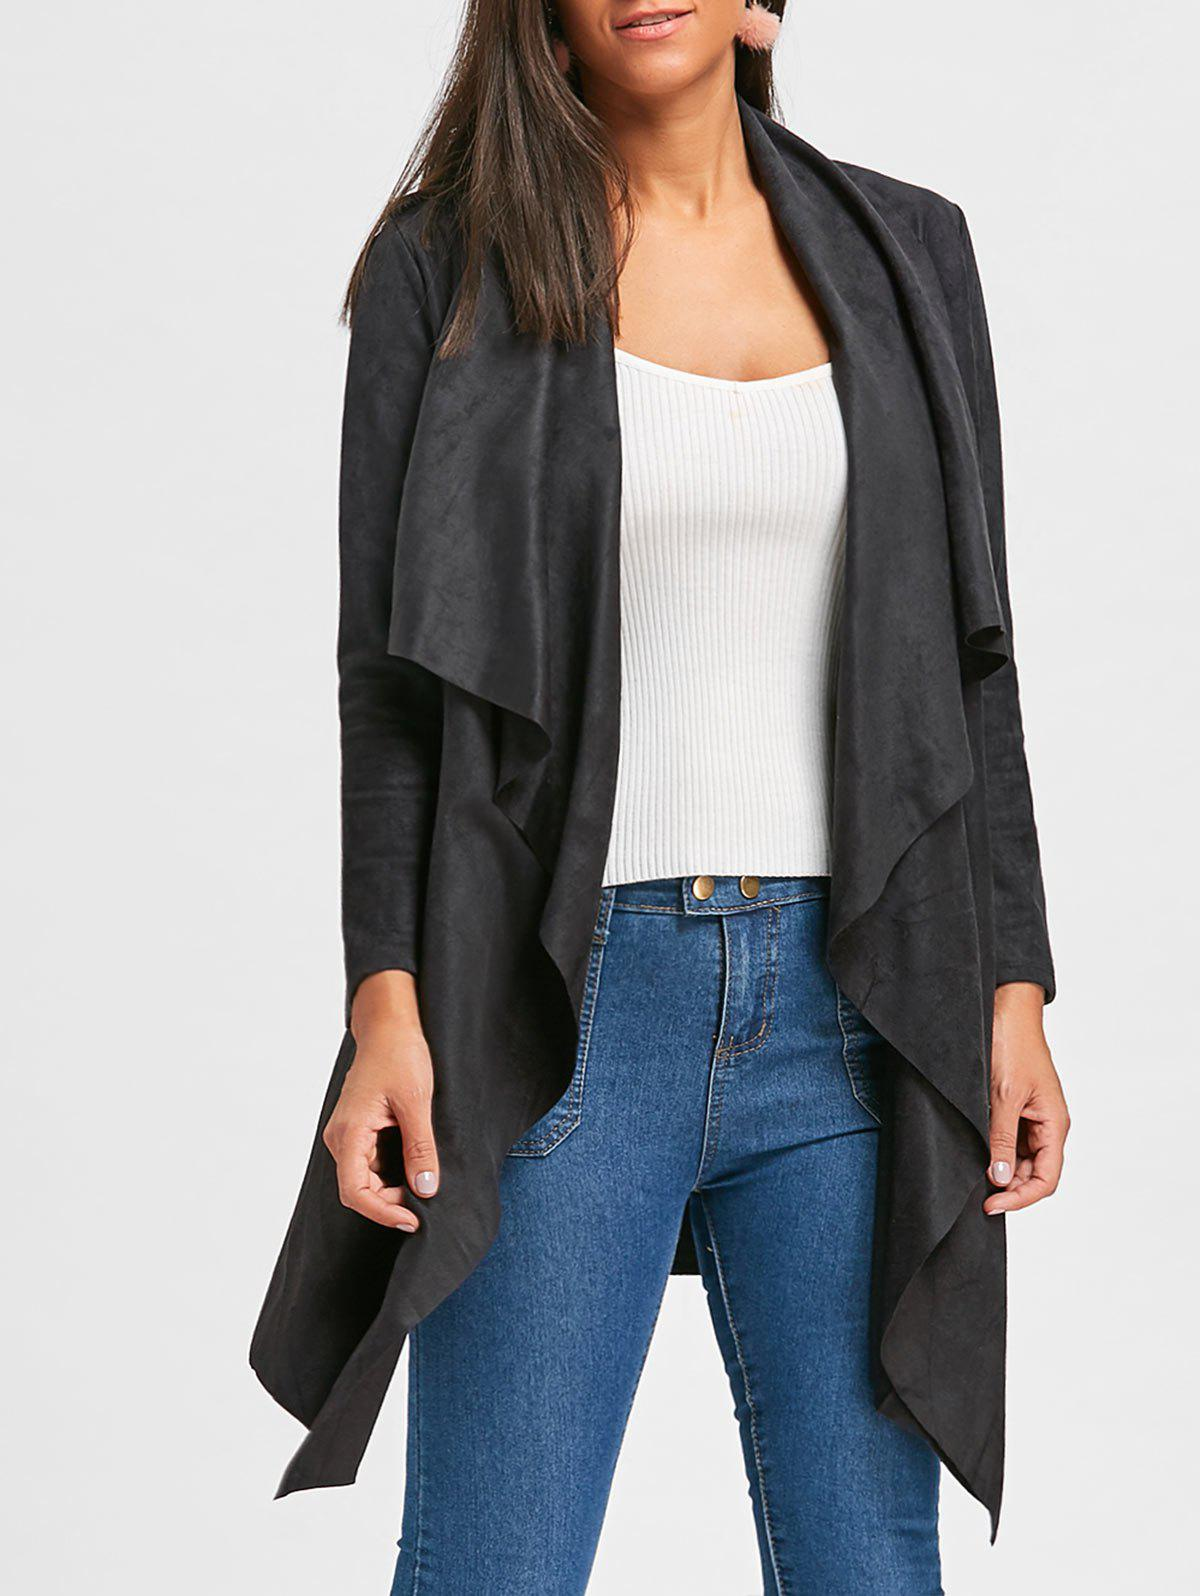 Faux Suede Open Front Draped CardiganWOMEN<br><br>Size: L; Color: BLACK; Type: Cardigans; Material: Polyester,Spandex; Sleeve Length: Full; Collar: Shawl Collar; Style: Fashion; Pattern Type: Solid; Season: Fall,Spring; Weight: 0.5300kg; Package Contents: 1 x Cardigan;